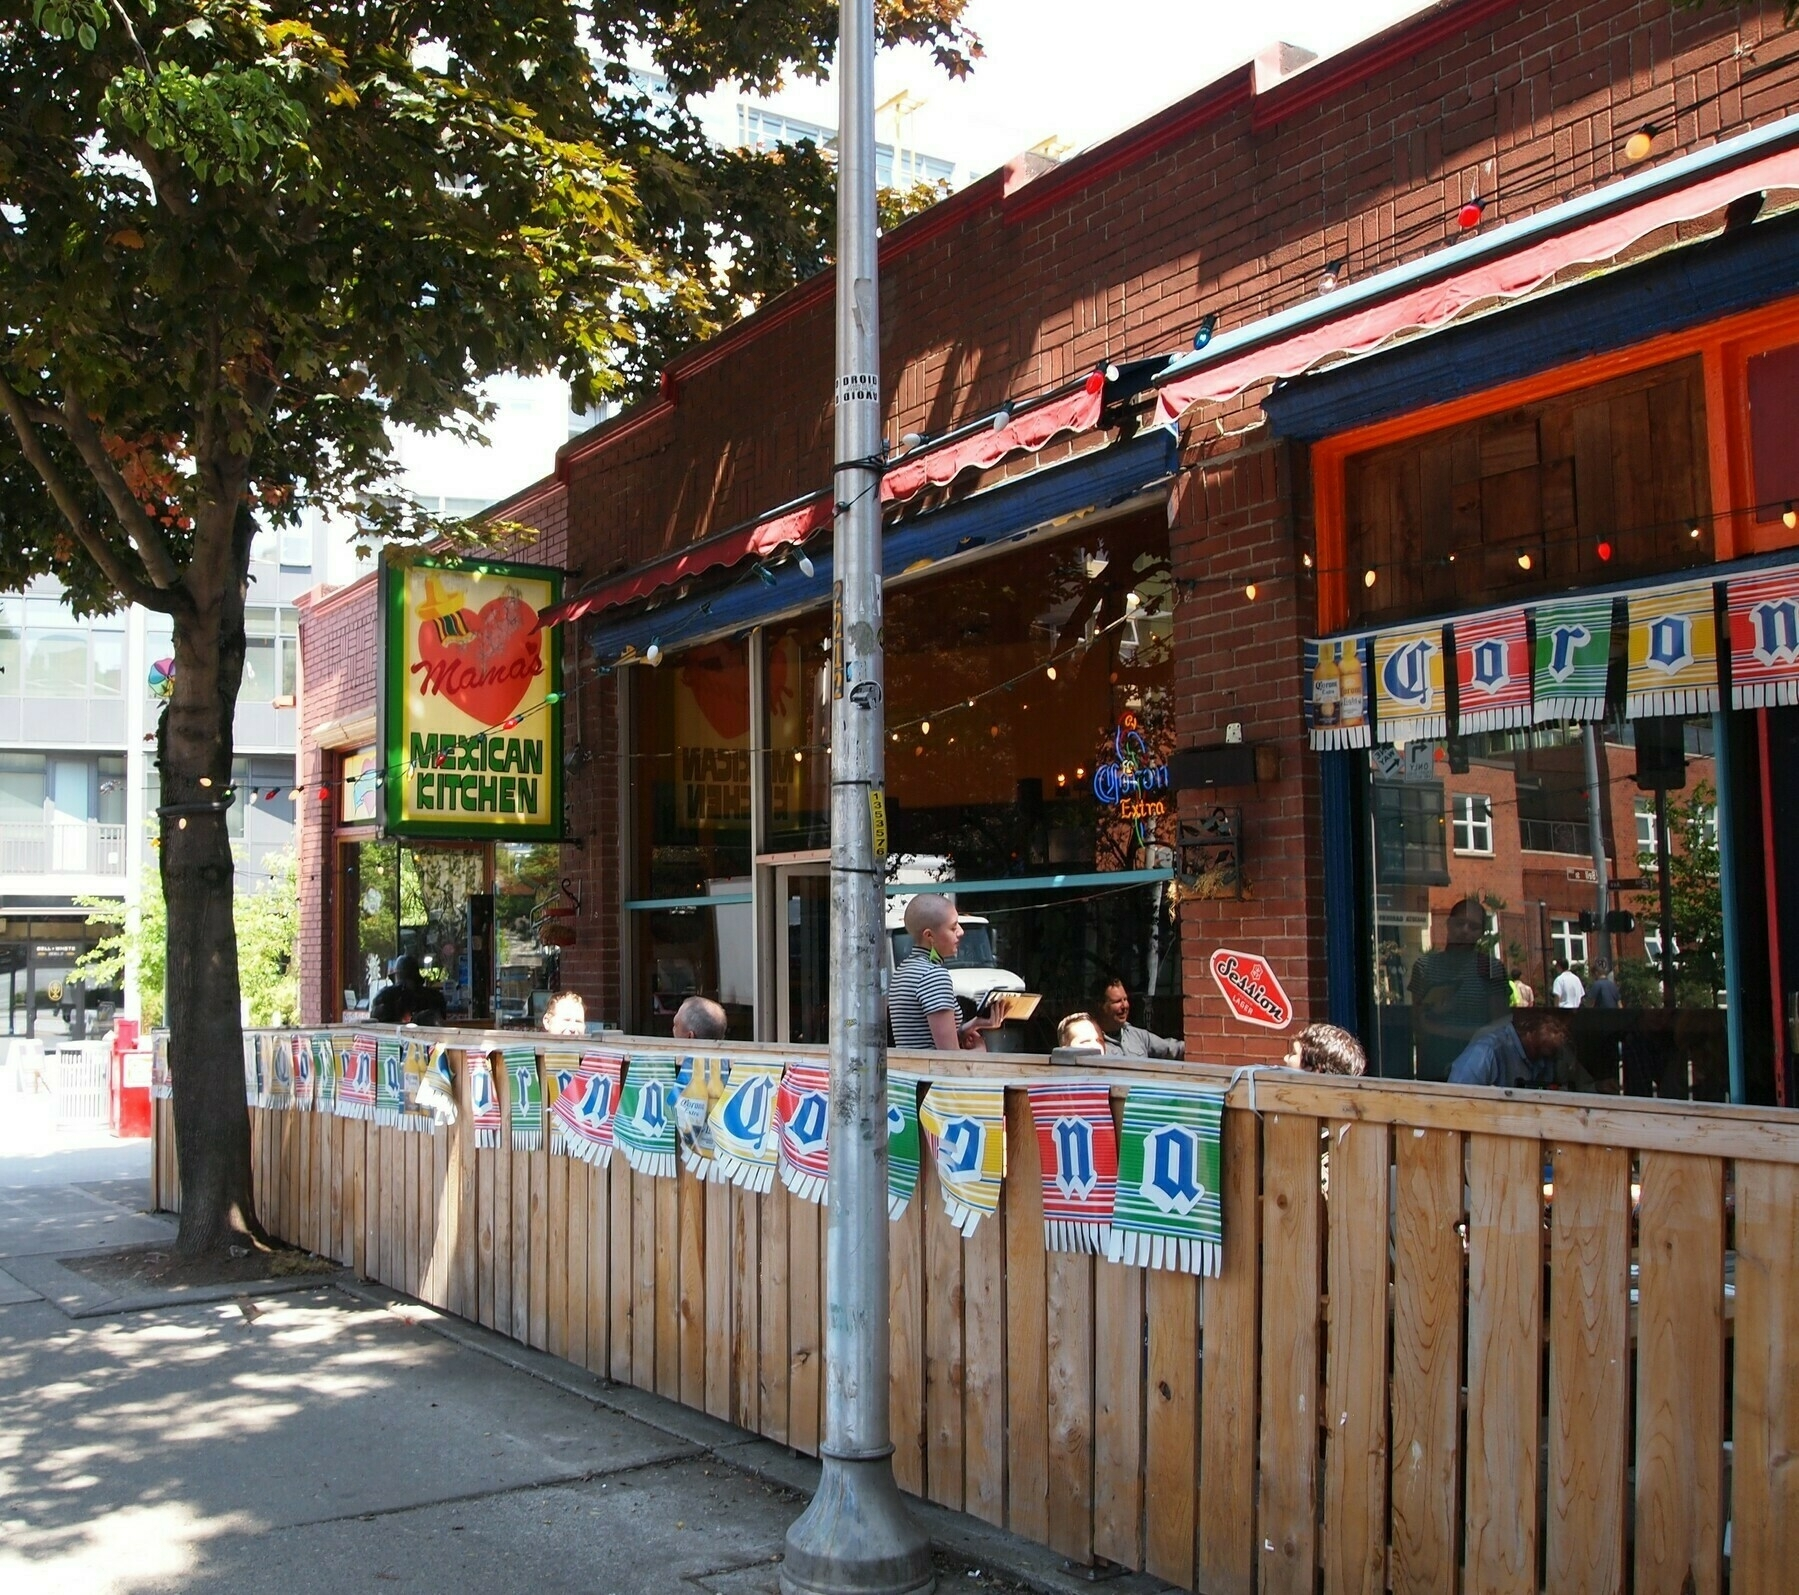 A pine fence surrounds outdoor seating at Mama's Mexican Kitchen